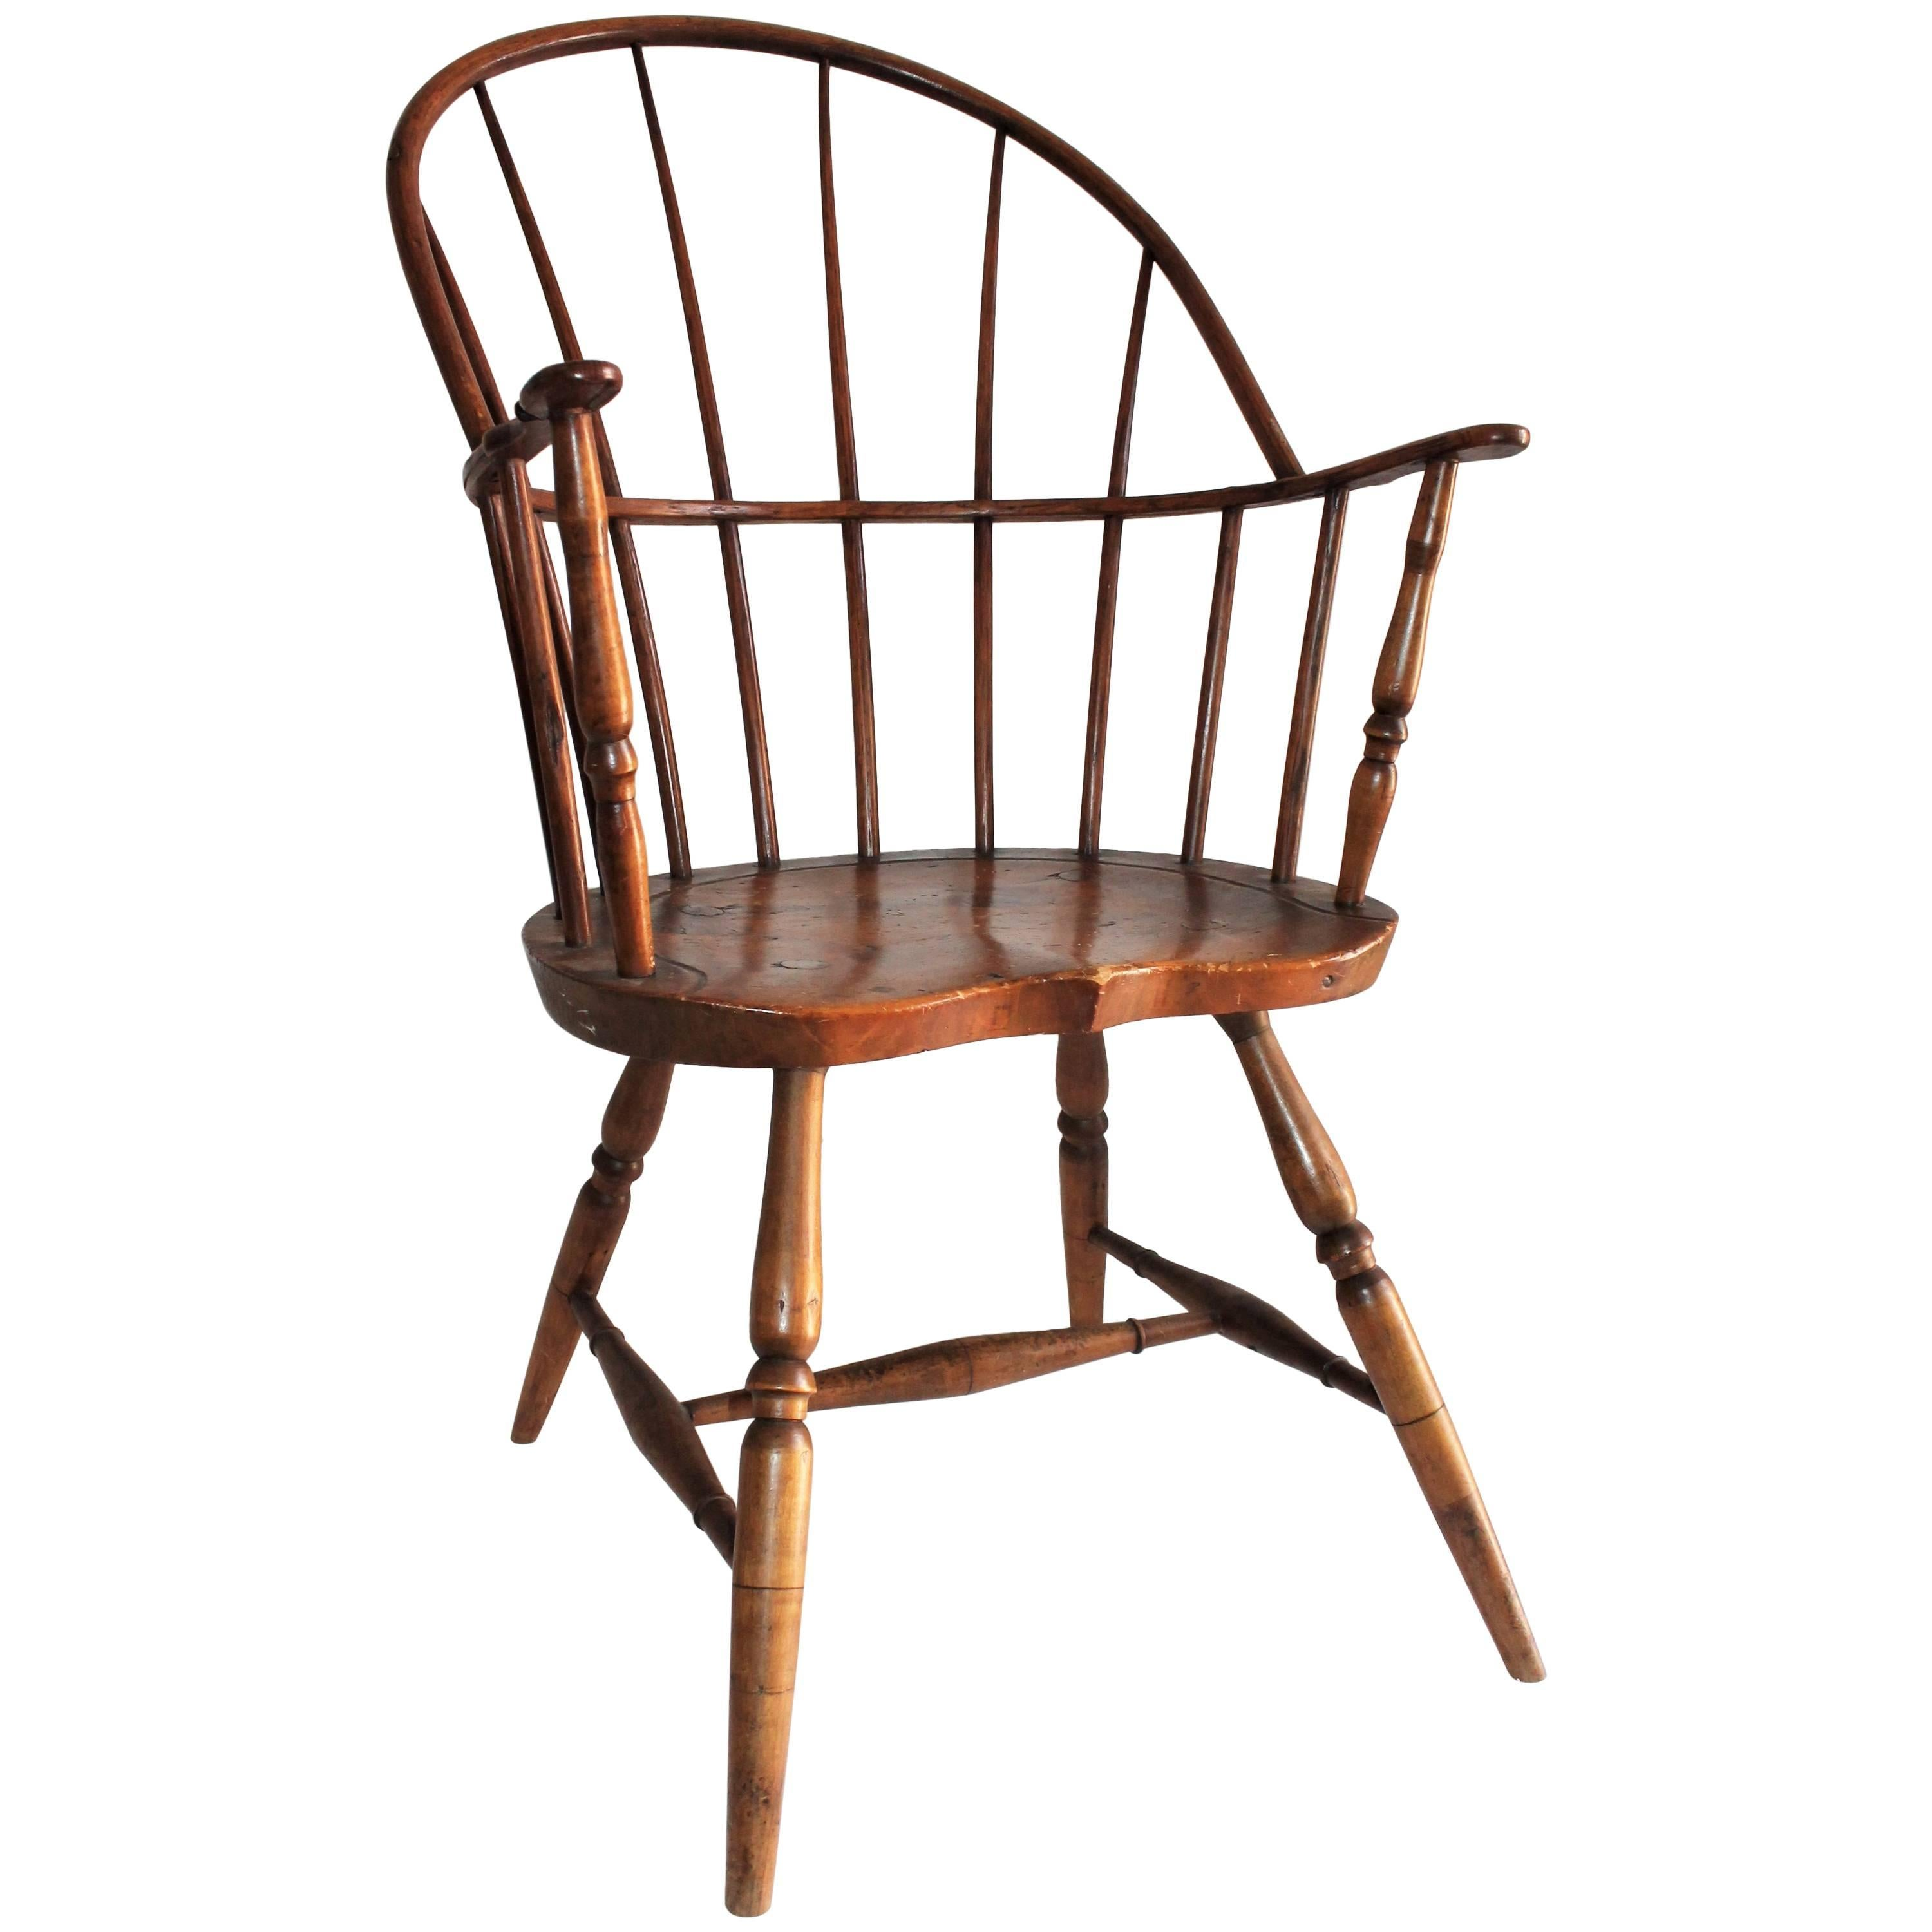 Antique and Vintage Windsor Chairs 145 For Sale at 1stdibs